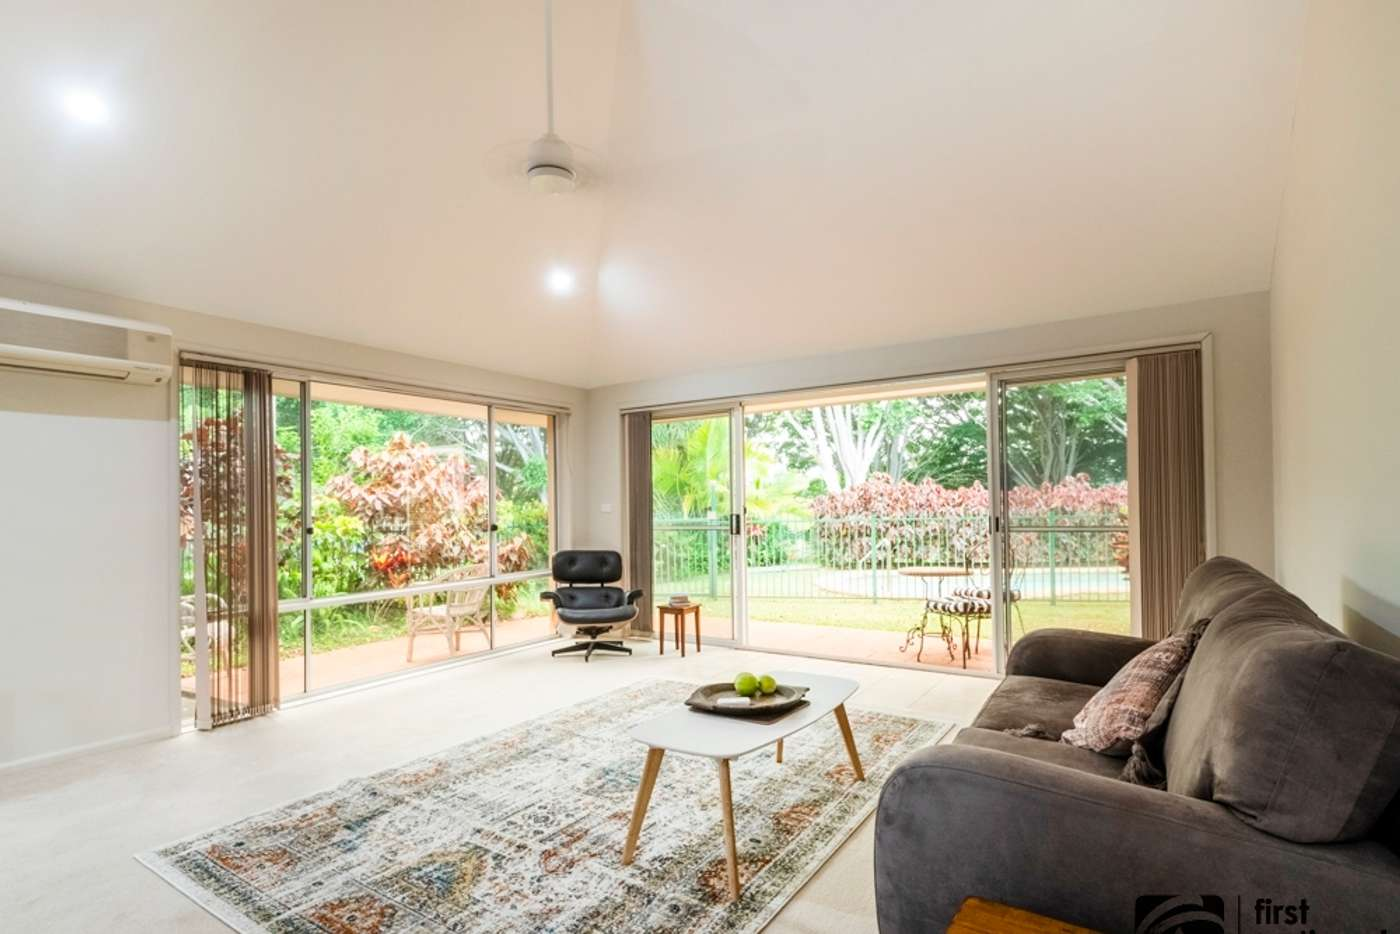 Fifth view of Homely house listing, 21 Shearwater Place, Korora NSW 2450